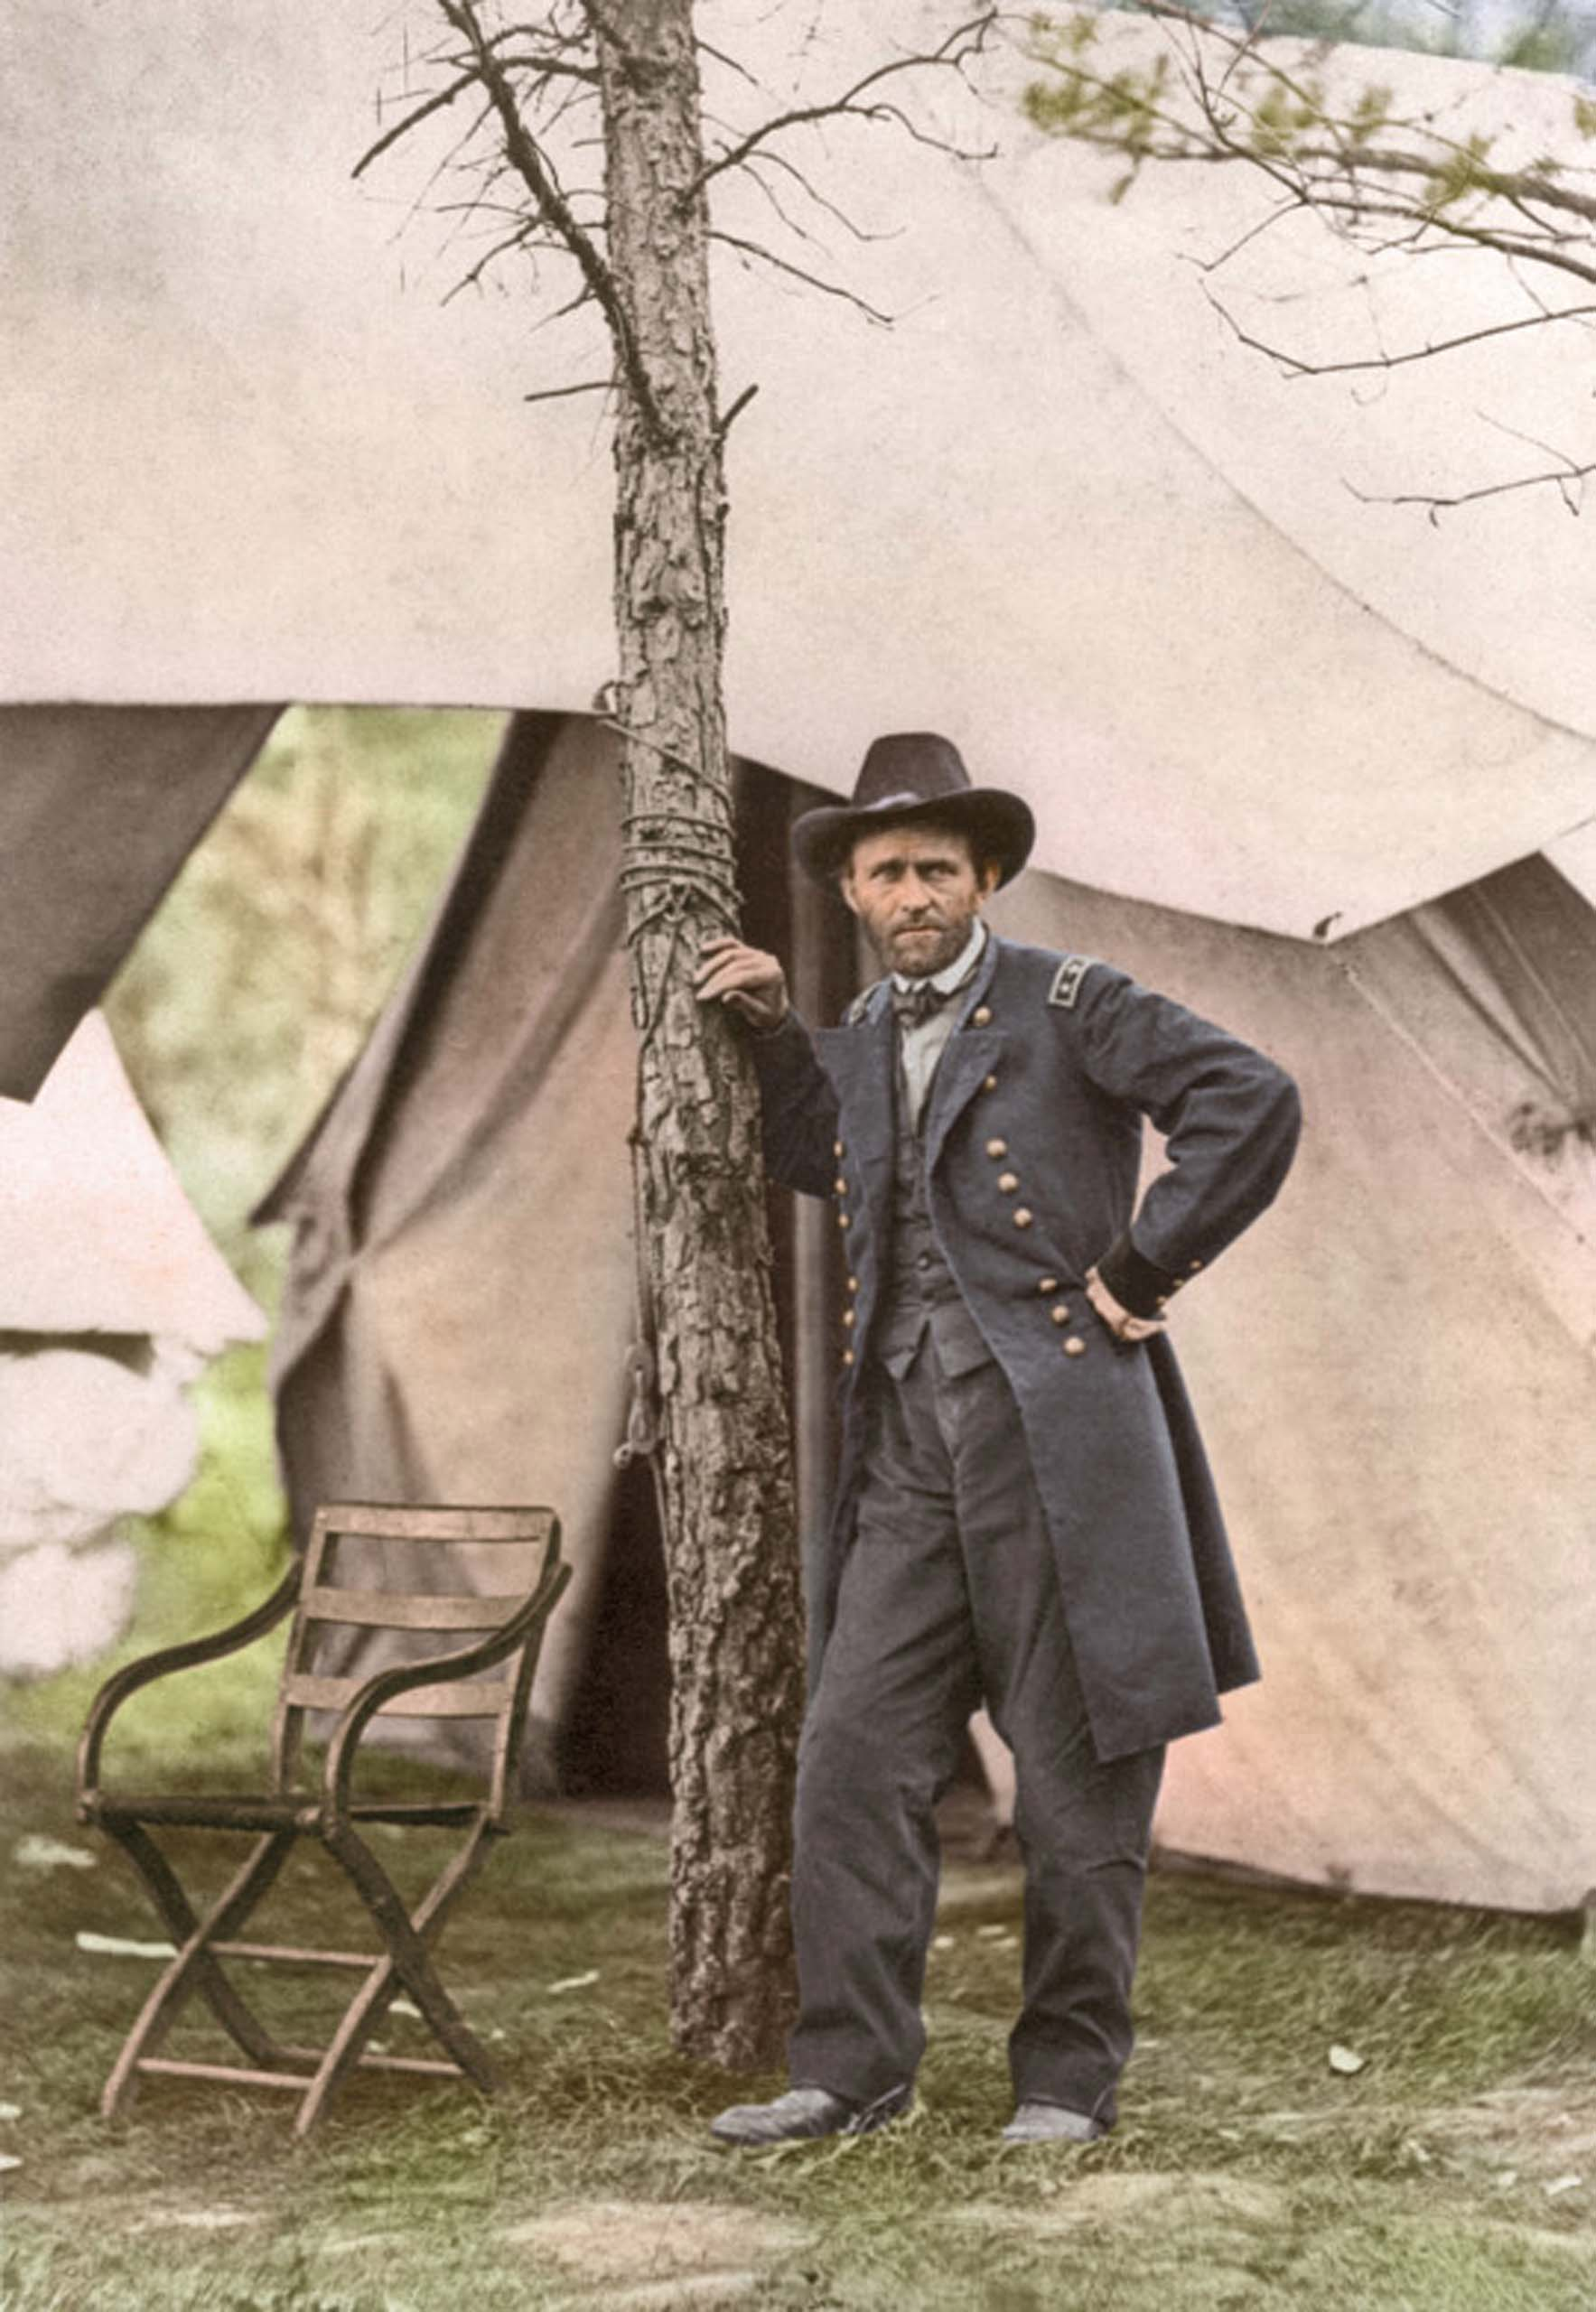 June 11 or 12, 1864. General Ulysses S. Grant at City Point.                                   <i>Ranked #26 in SRI Survey of American Presidents, Grant remained in the bottom five Presidents of the survey through the 1980s and 1990s before being bumped up the list.</i>